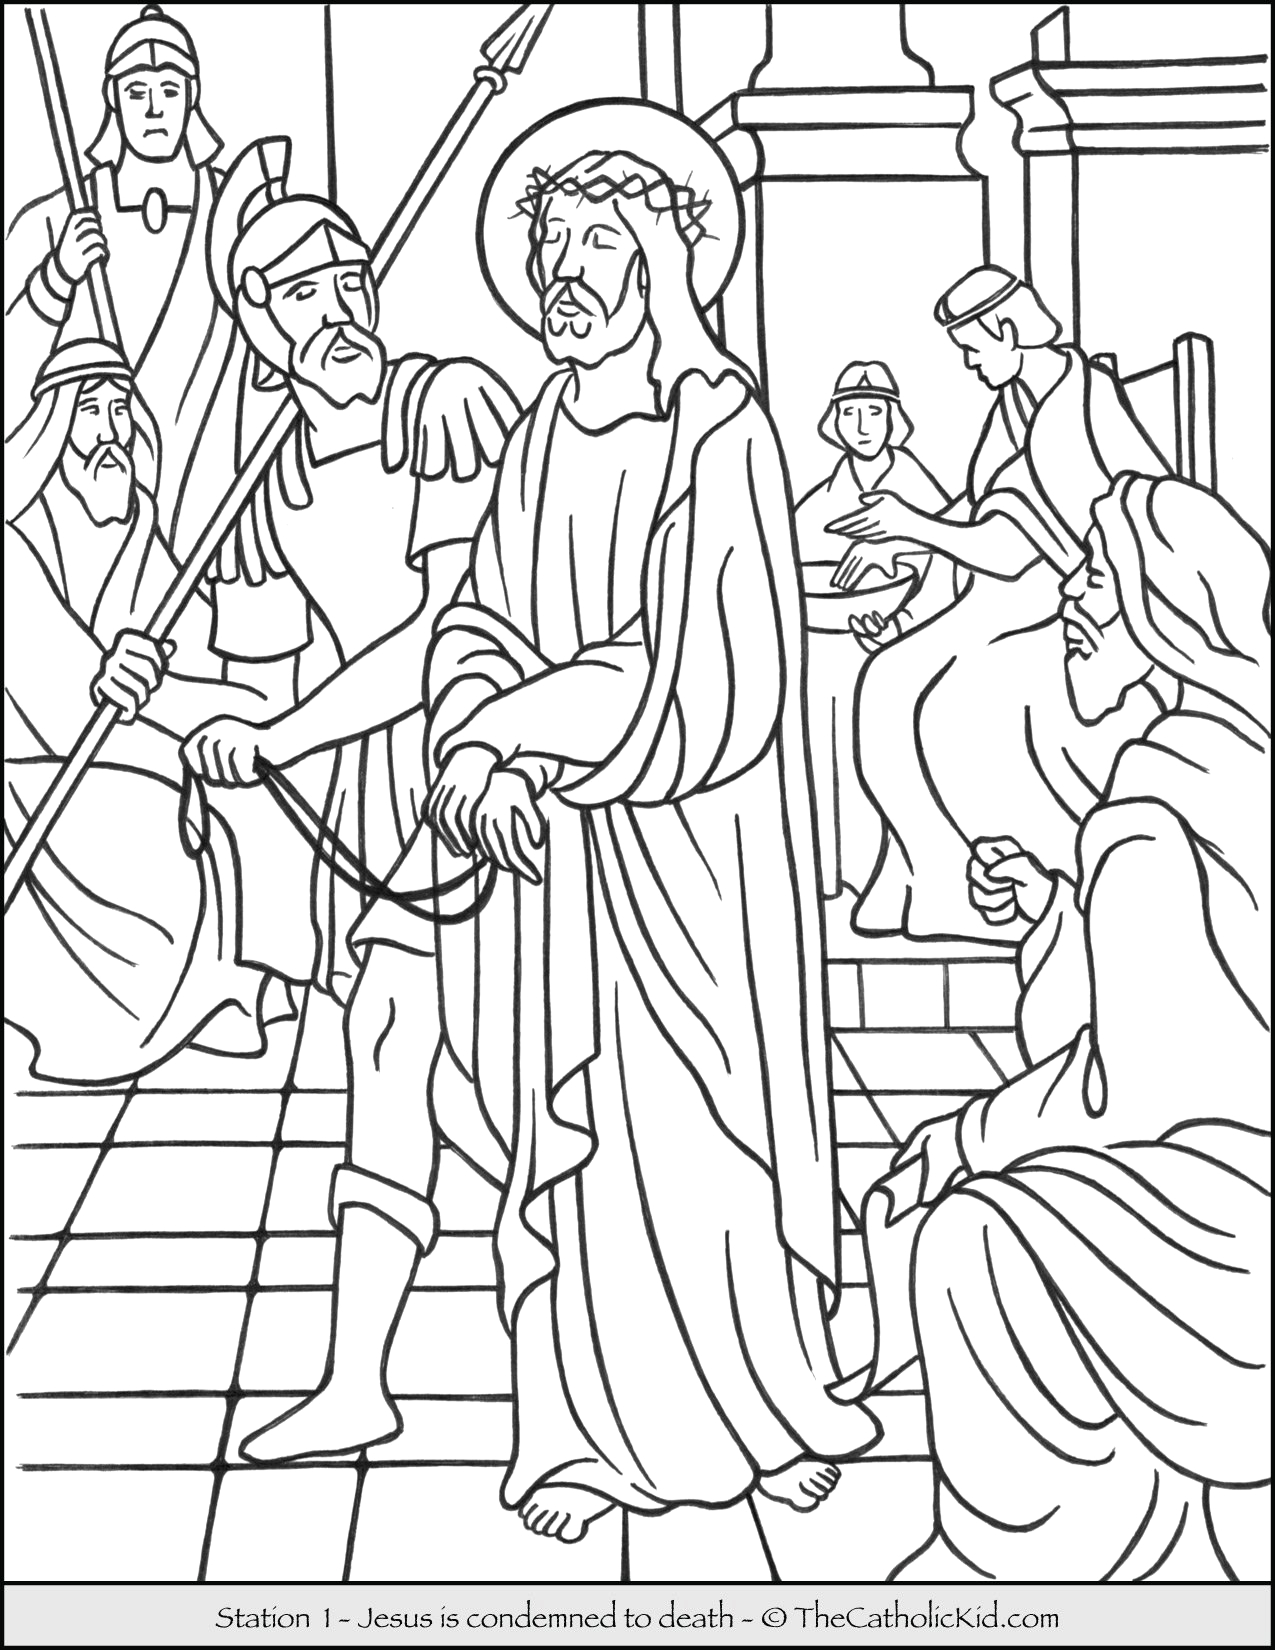 stations of the cross catholic coloring pages for kids cnt mls